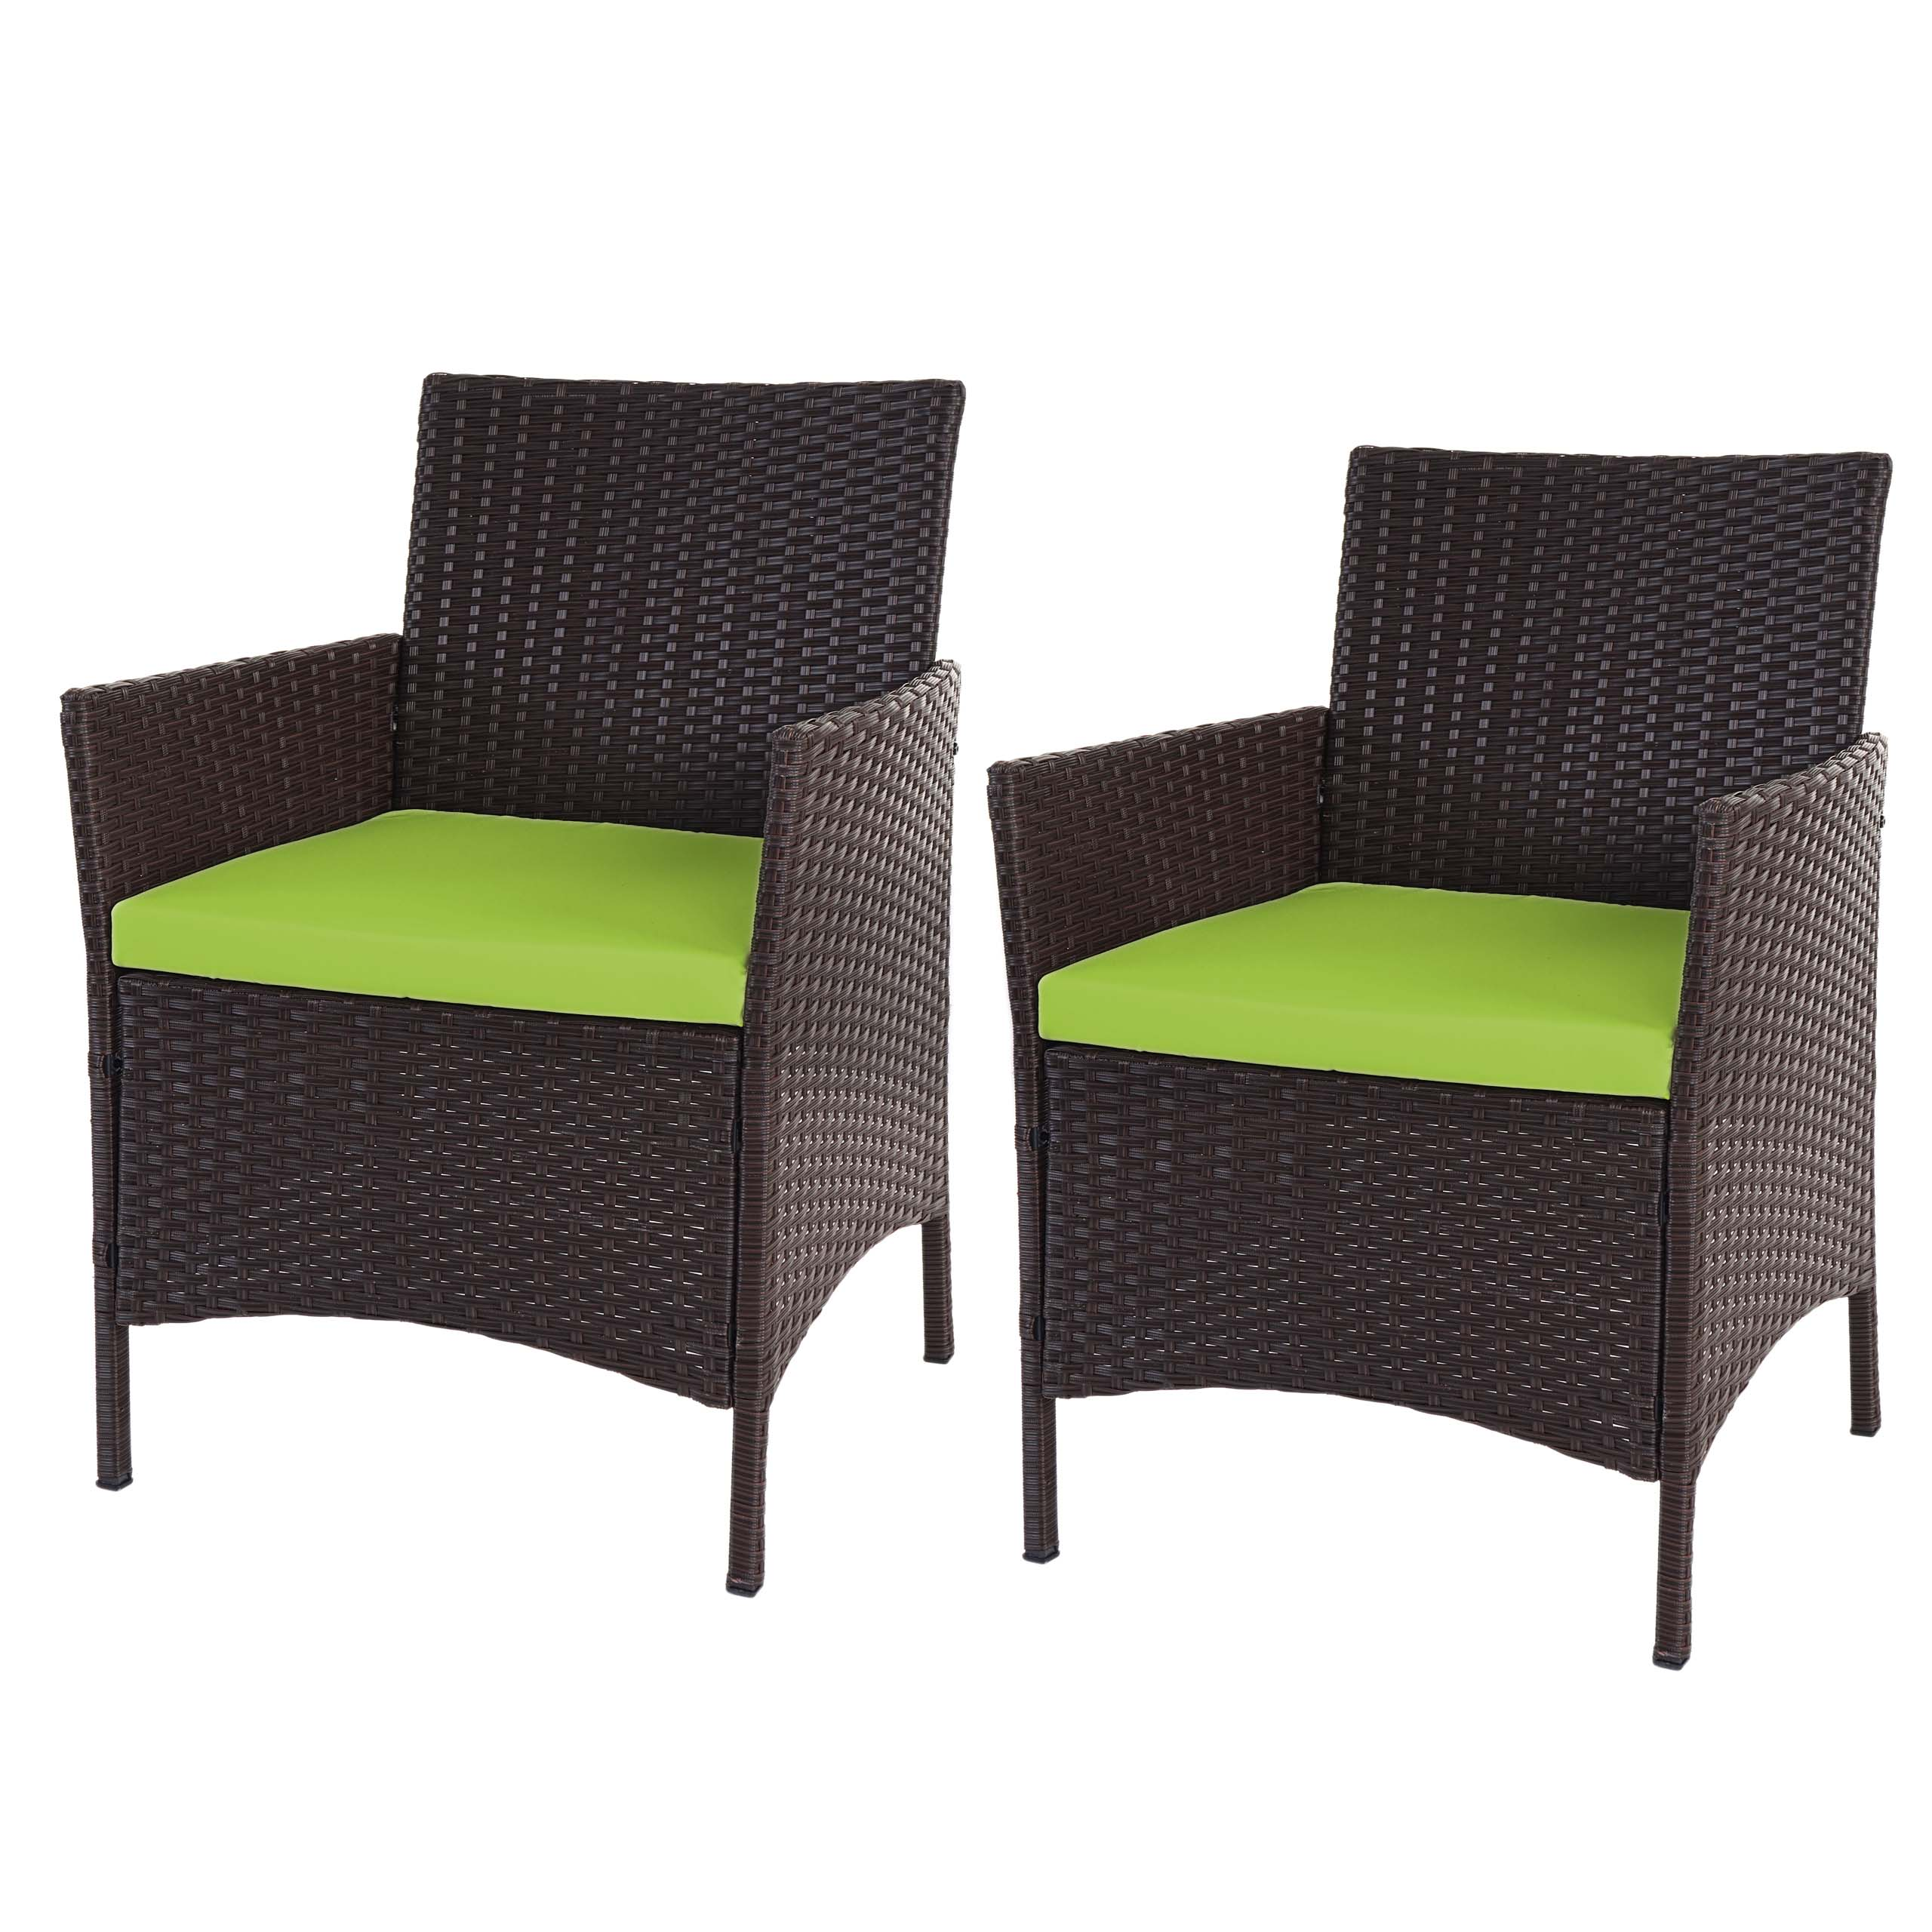 2x poly rattan gartensessel halden korbsessel braun meliert kissen gr n. Black Bedroom Furniture Sets. Home Design Ideas